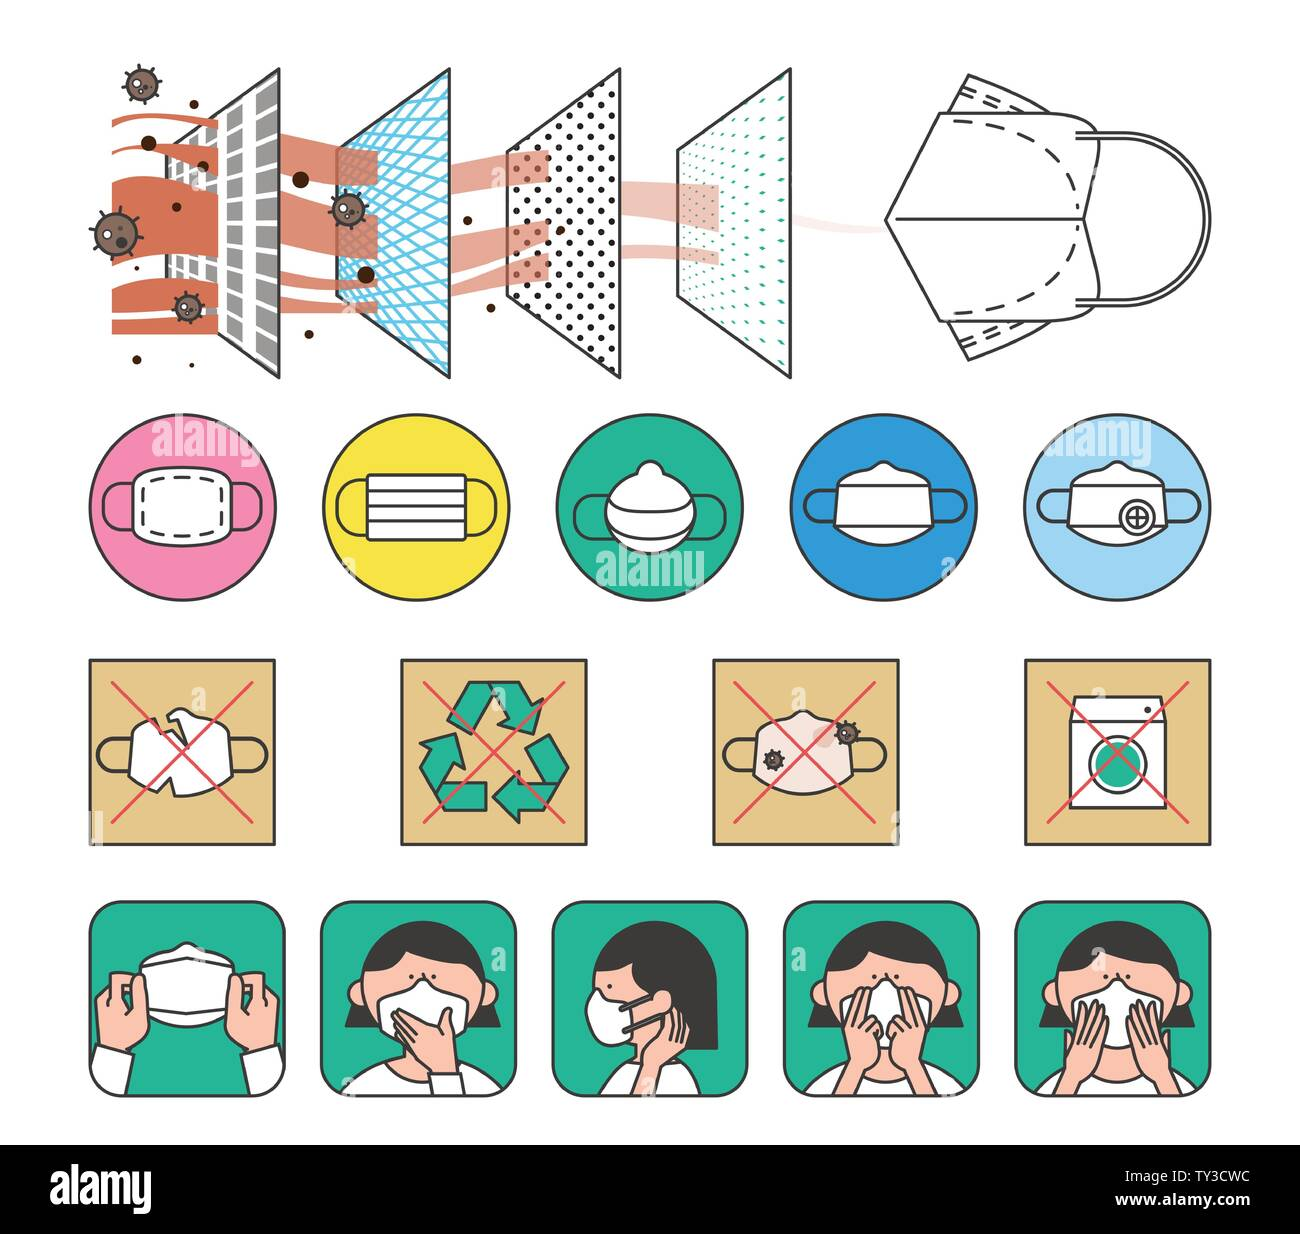 illustration of attention to health and safety when the seasons change 006 Stock Vector